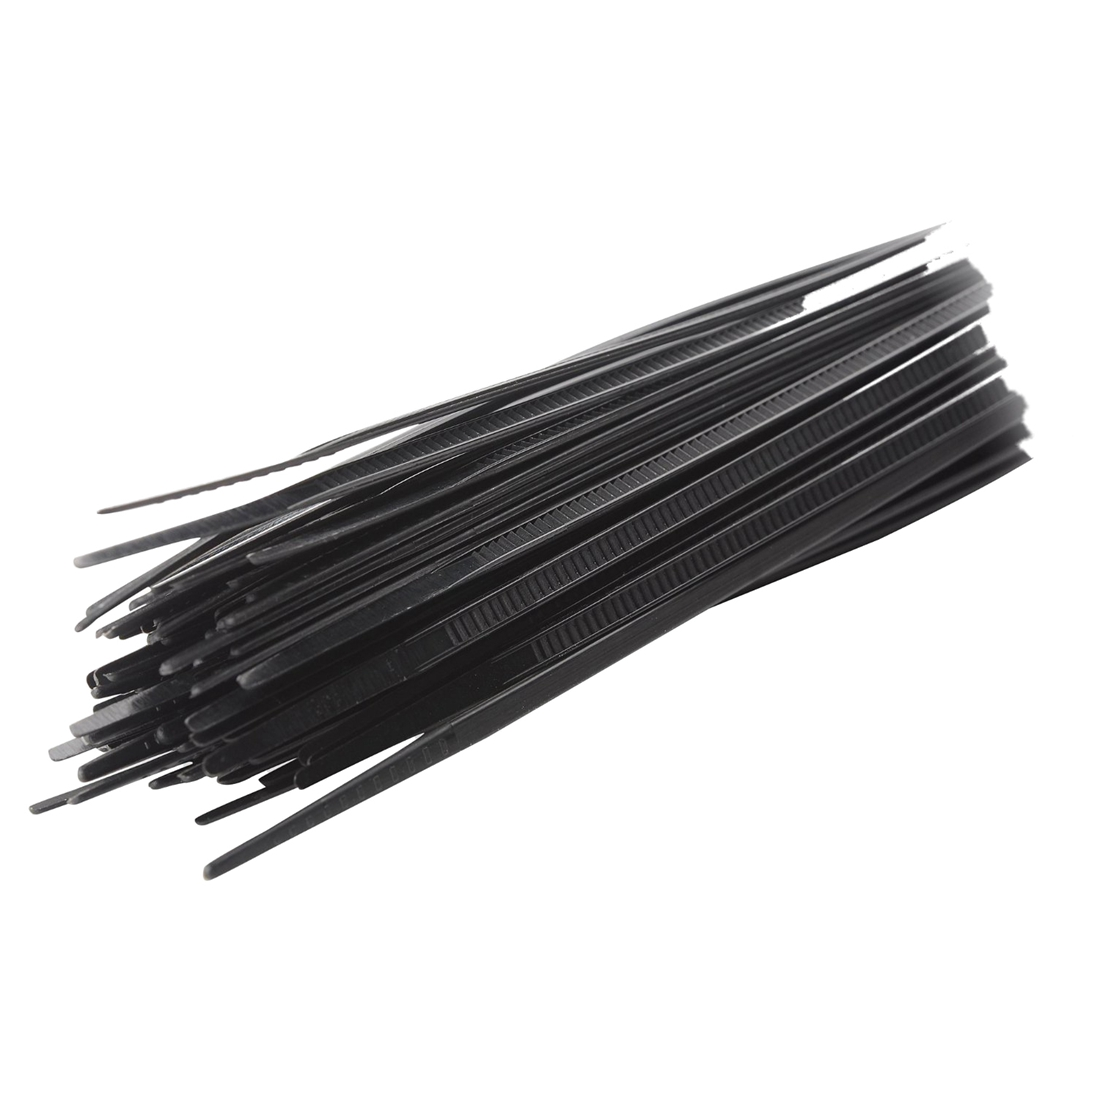 ᗕJFBL 100pcs Zip Wrap TIES Cable Ties Wire Straps PLASTIC Hook Self ...